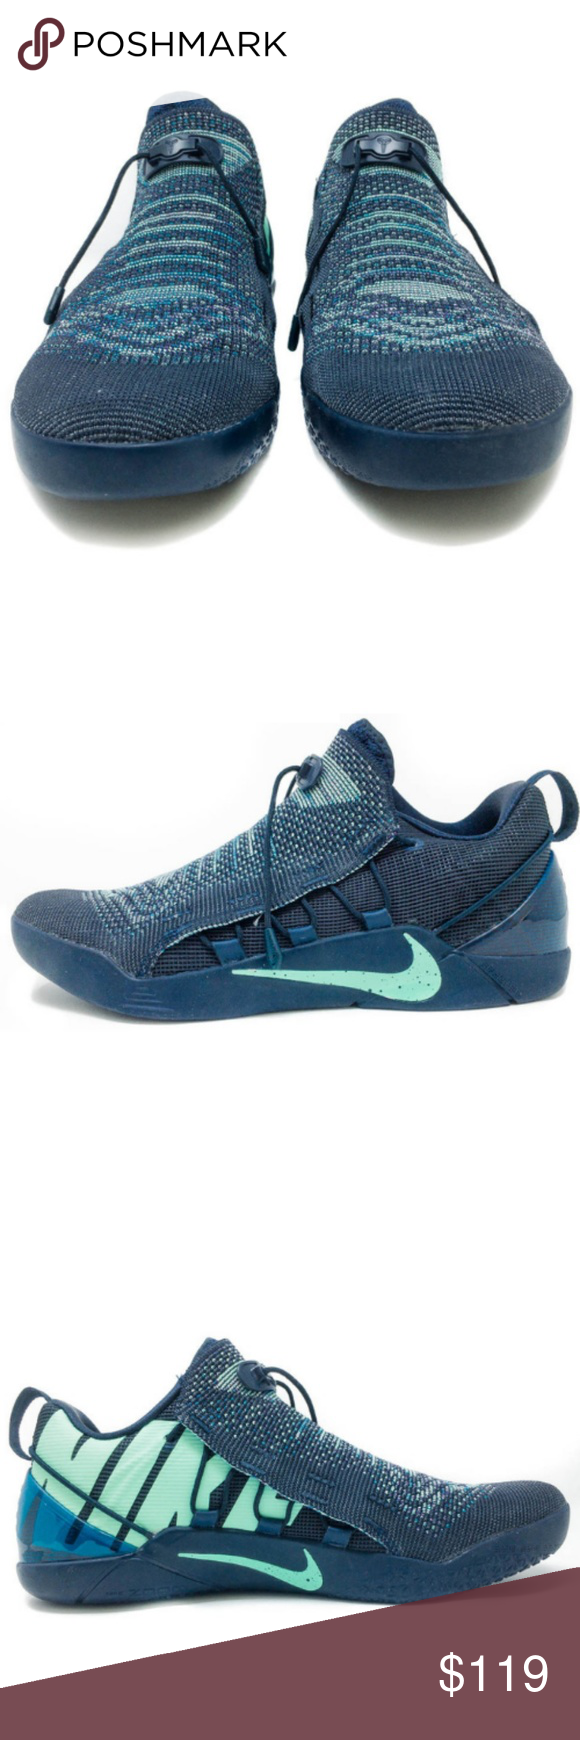 c4069a76492f Nike Kobe A.D. NXT Basketball Shoes Mambacurial Men s Nike Kobe A.D. NXT  Basketball Shoes Mambacurial Edition